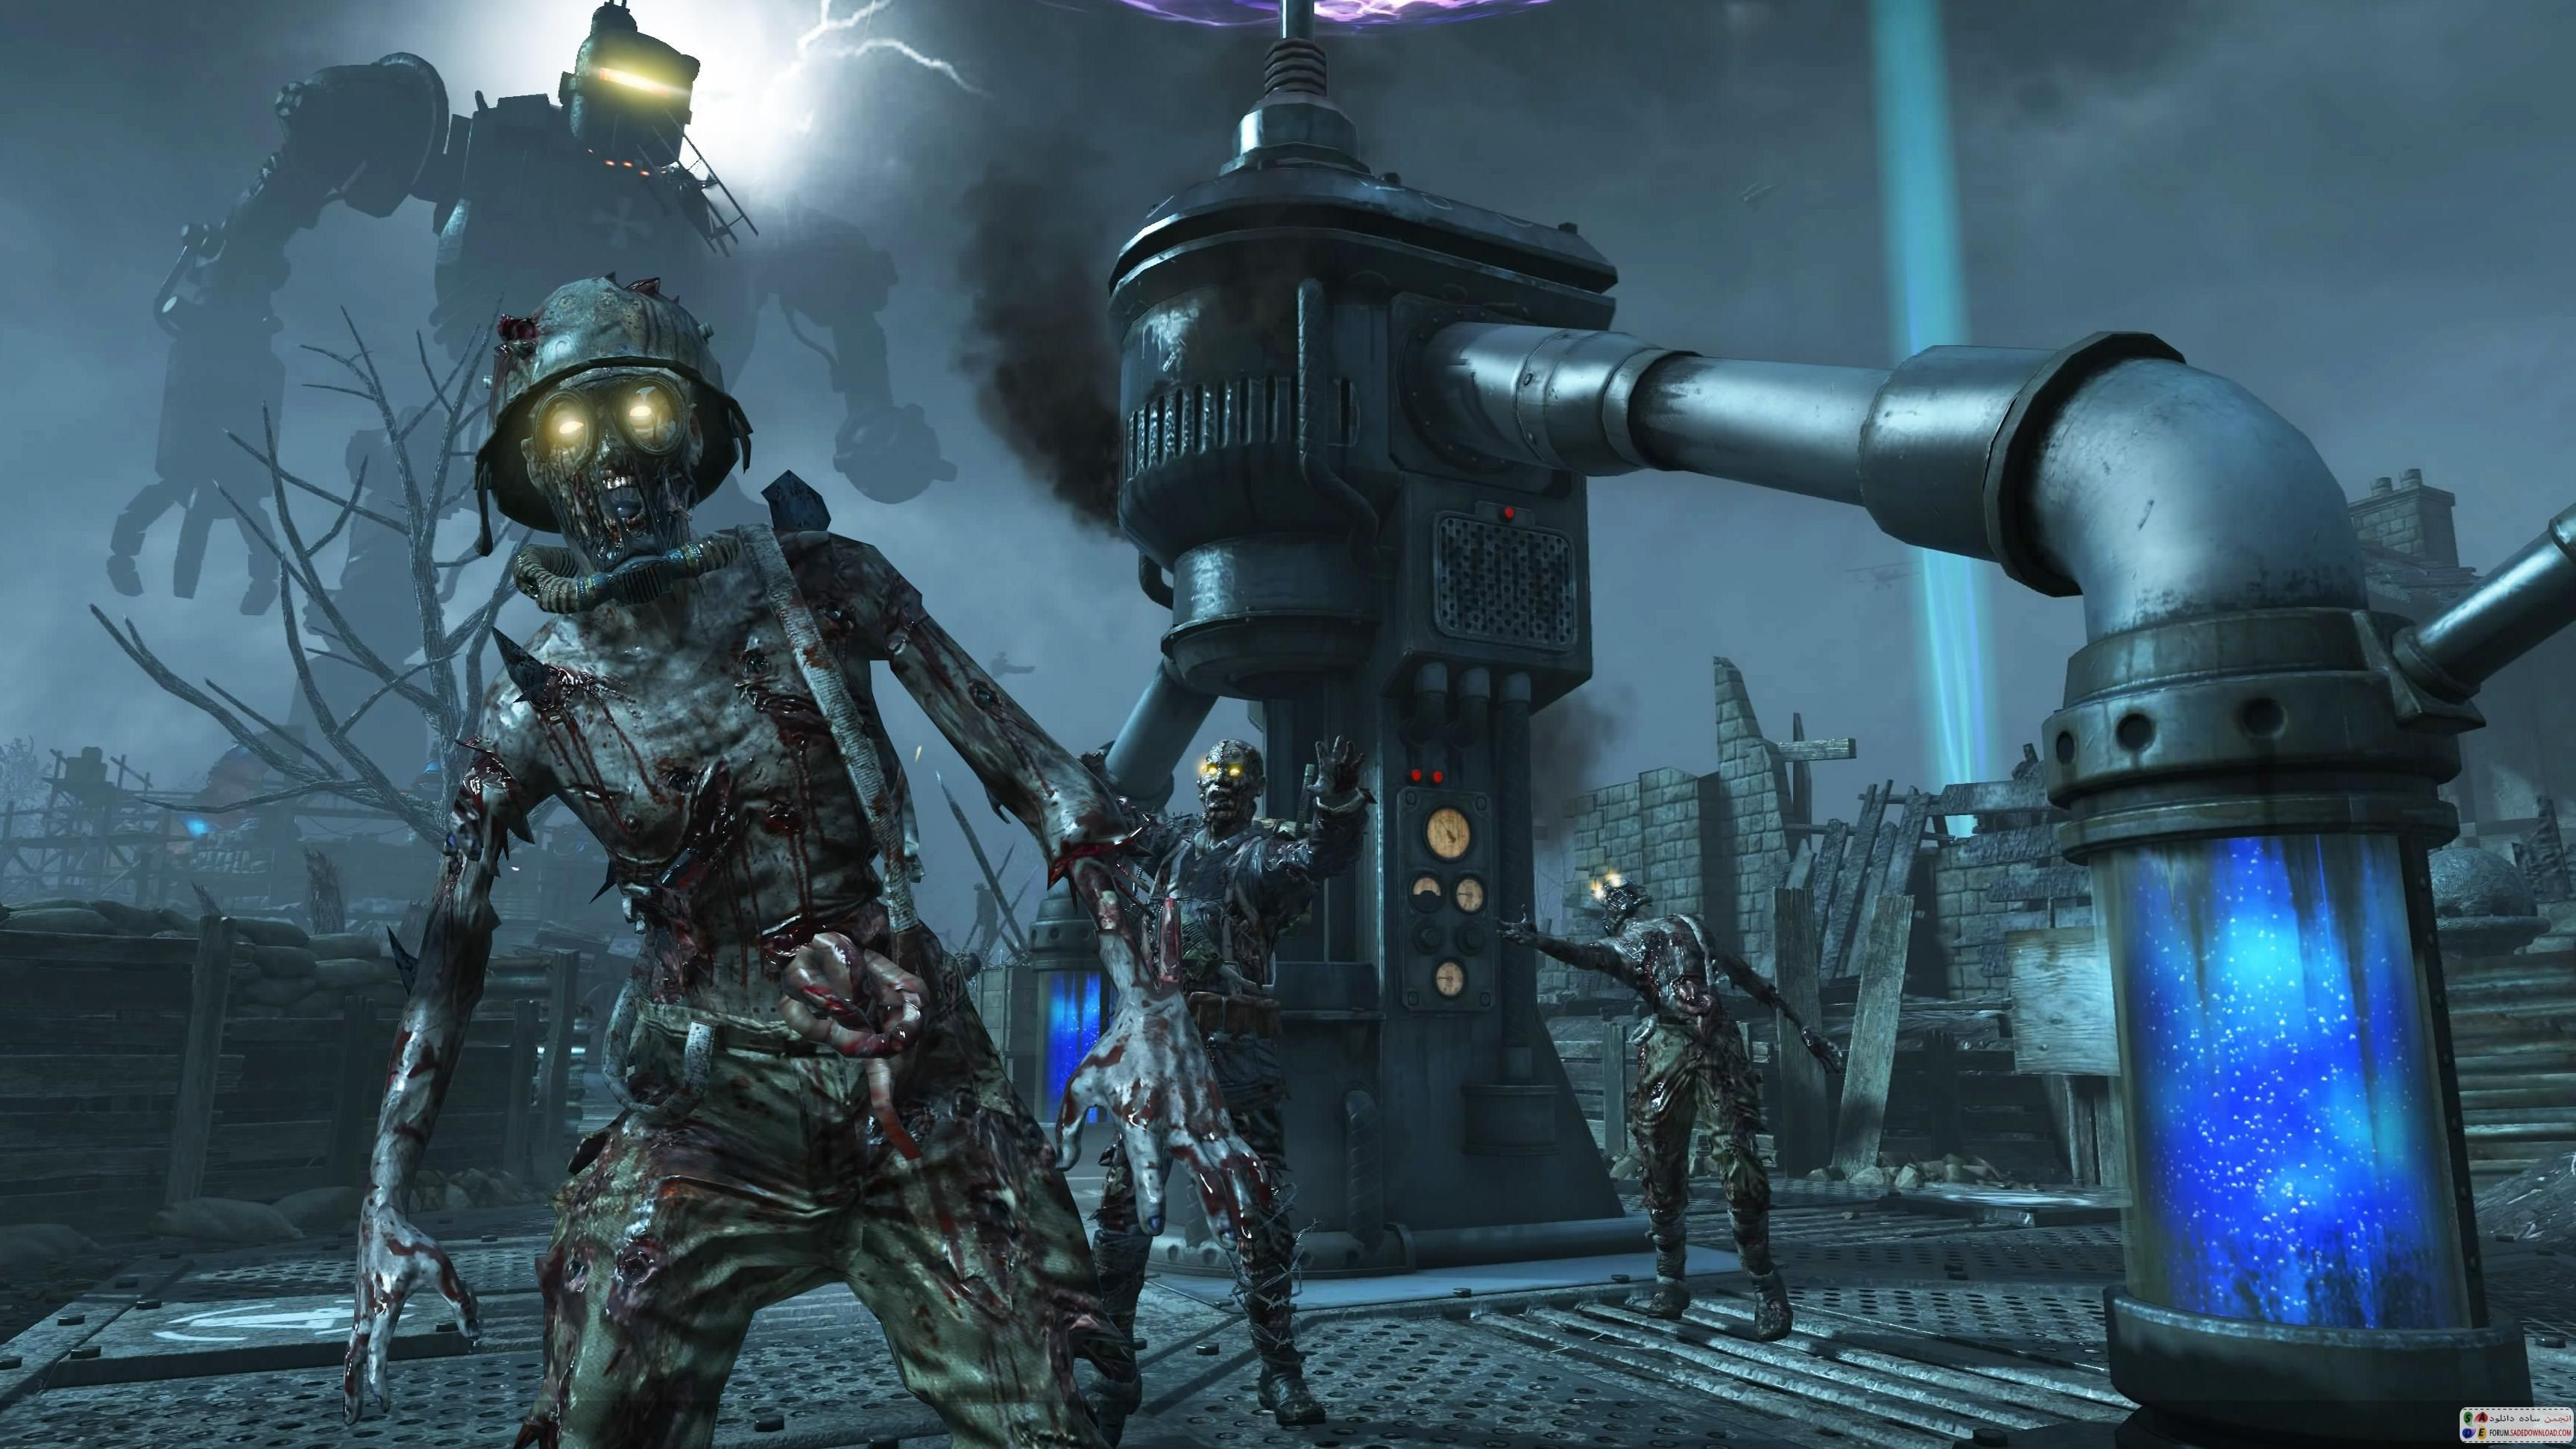 Hd Call Of Duty Black Ops 2 Photos Black Ops Black Ops Zombies Call Of Duty Black